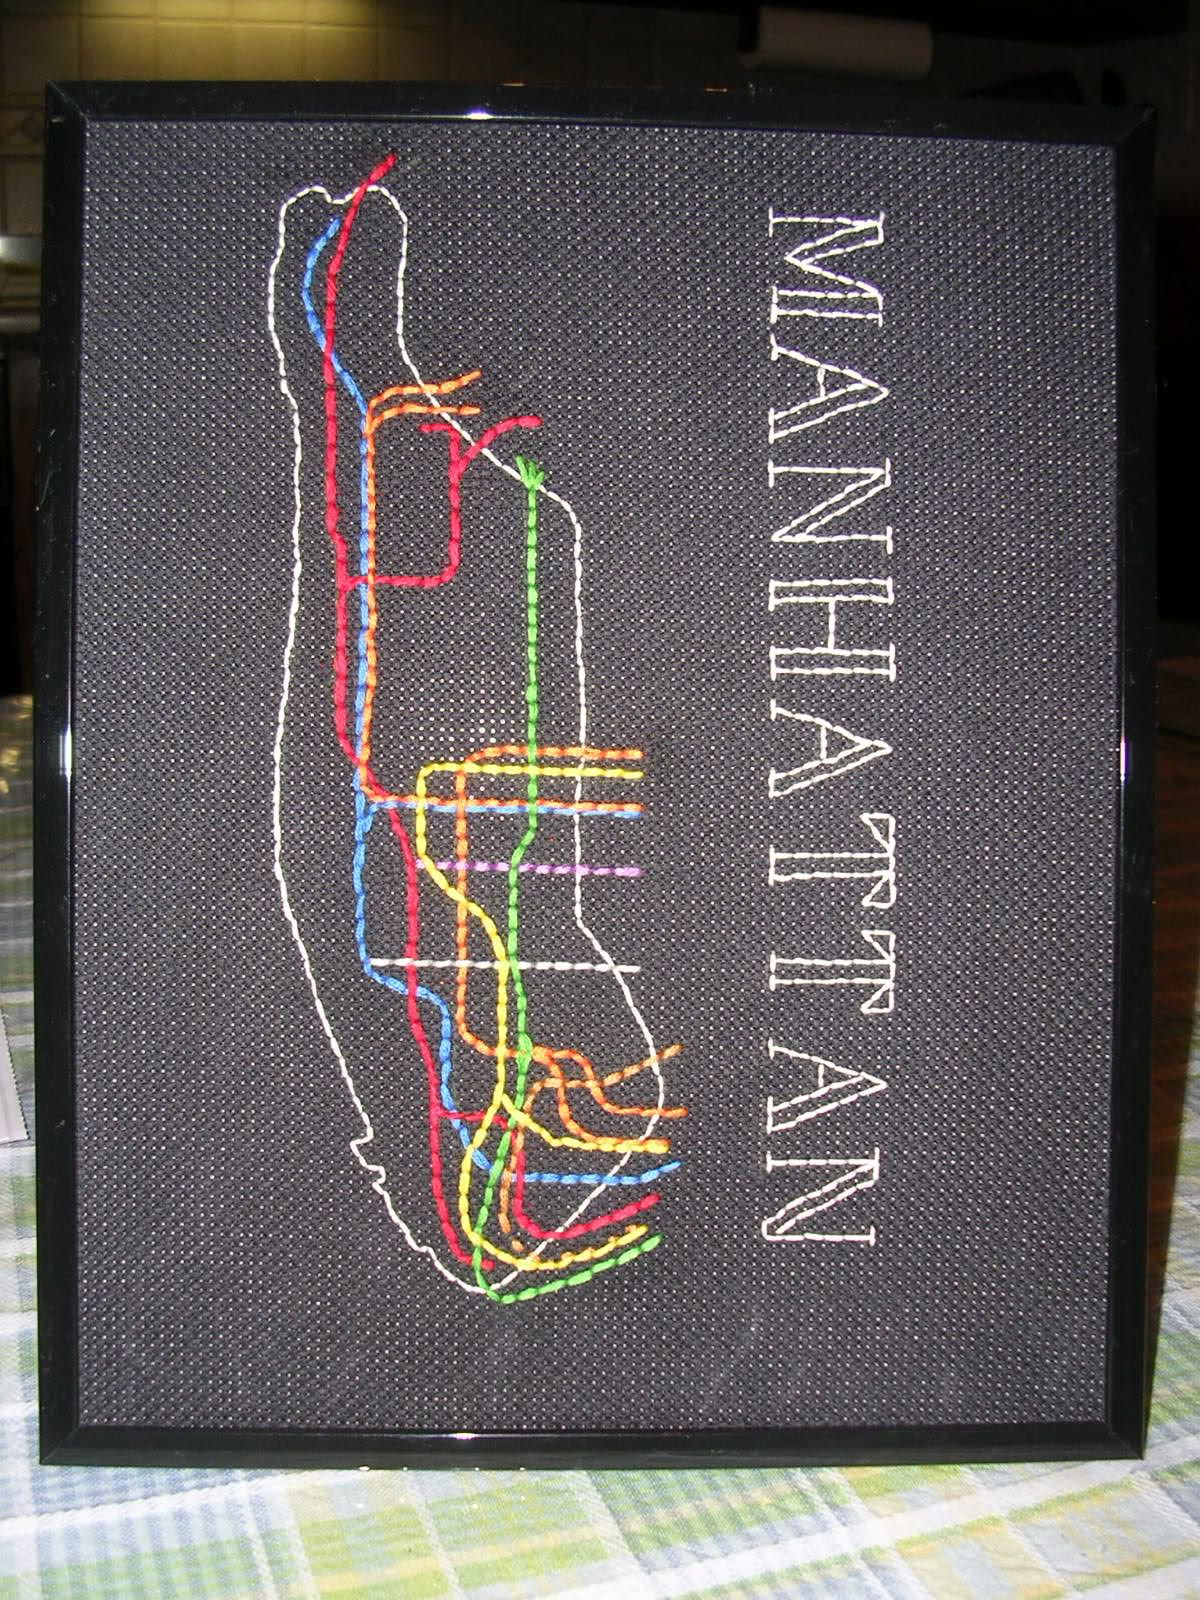 Creative Subway Map.Nyc Subway Map Needlework Creative And Crafty Nyc Subway Map